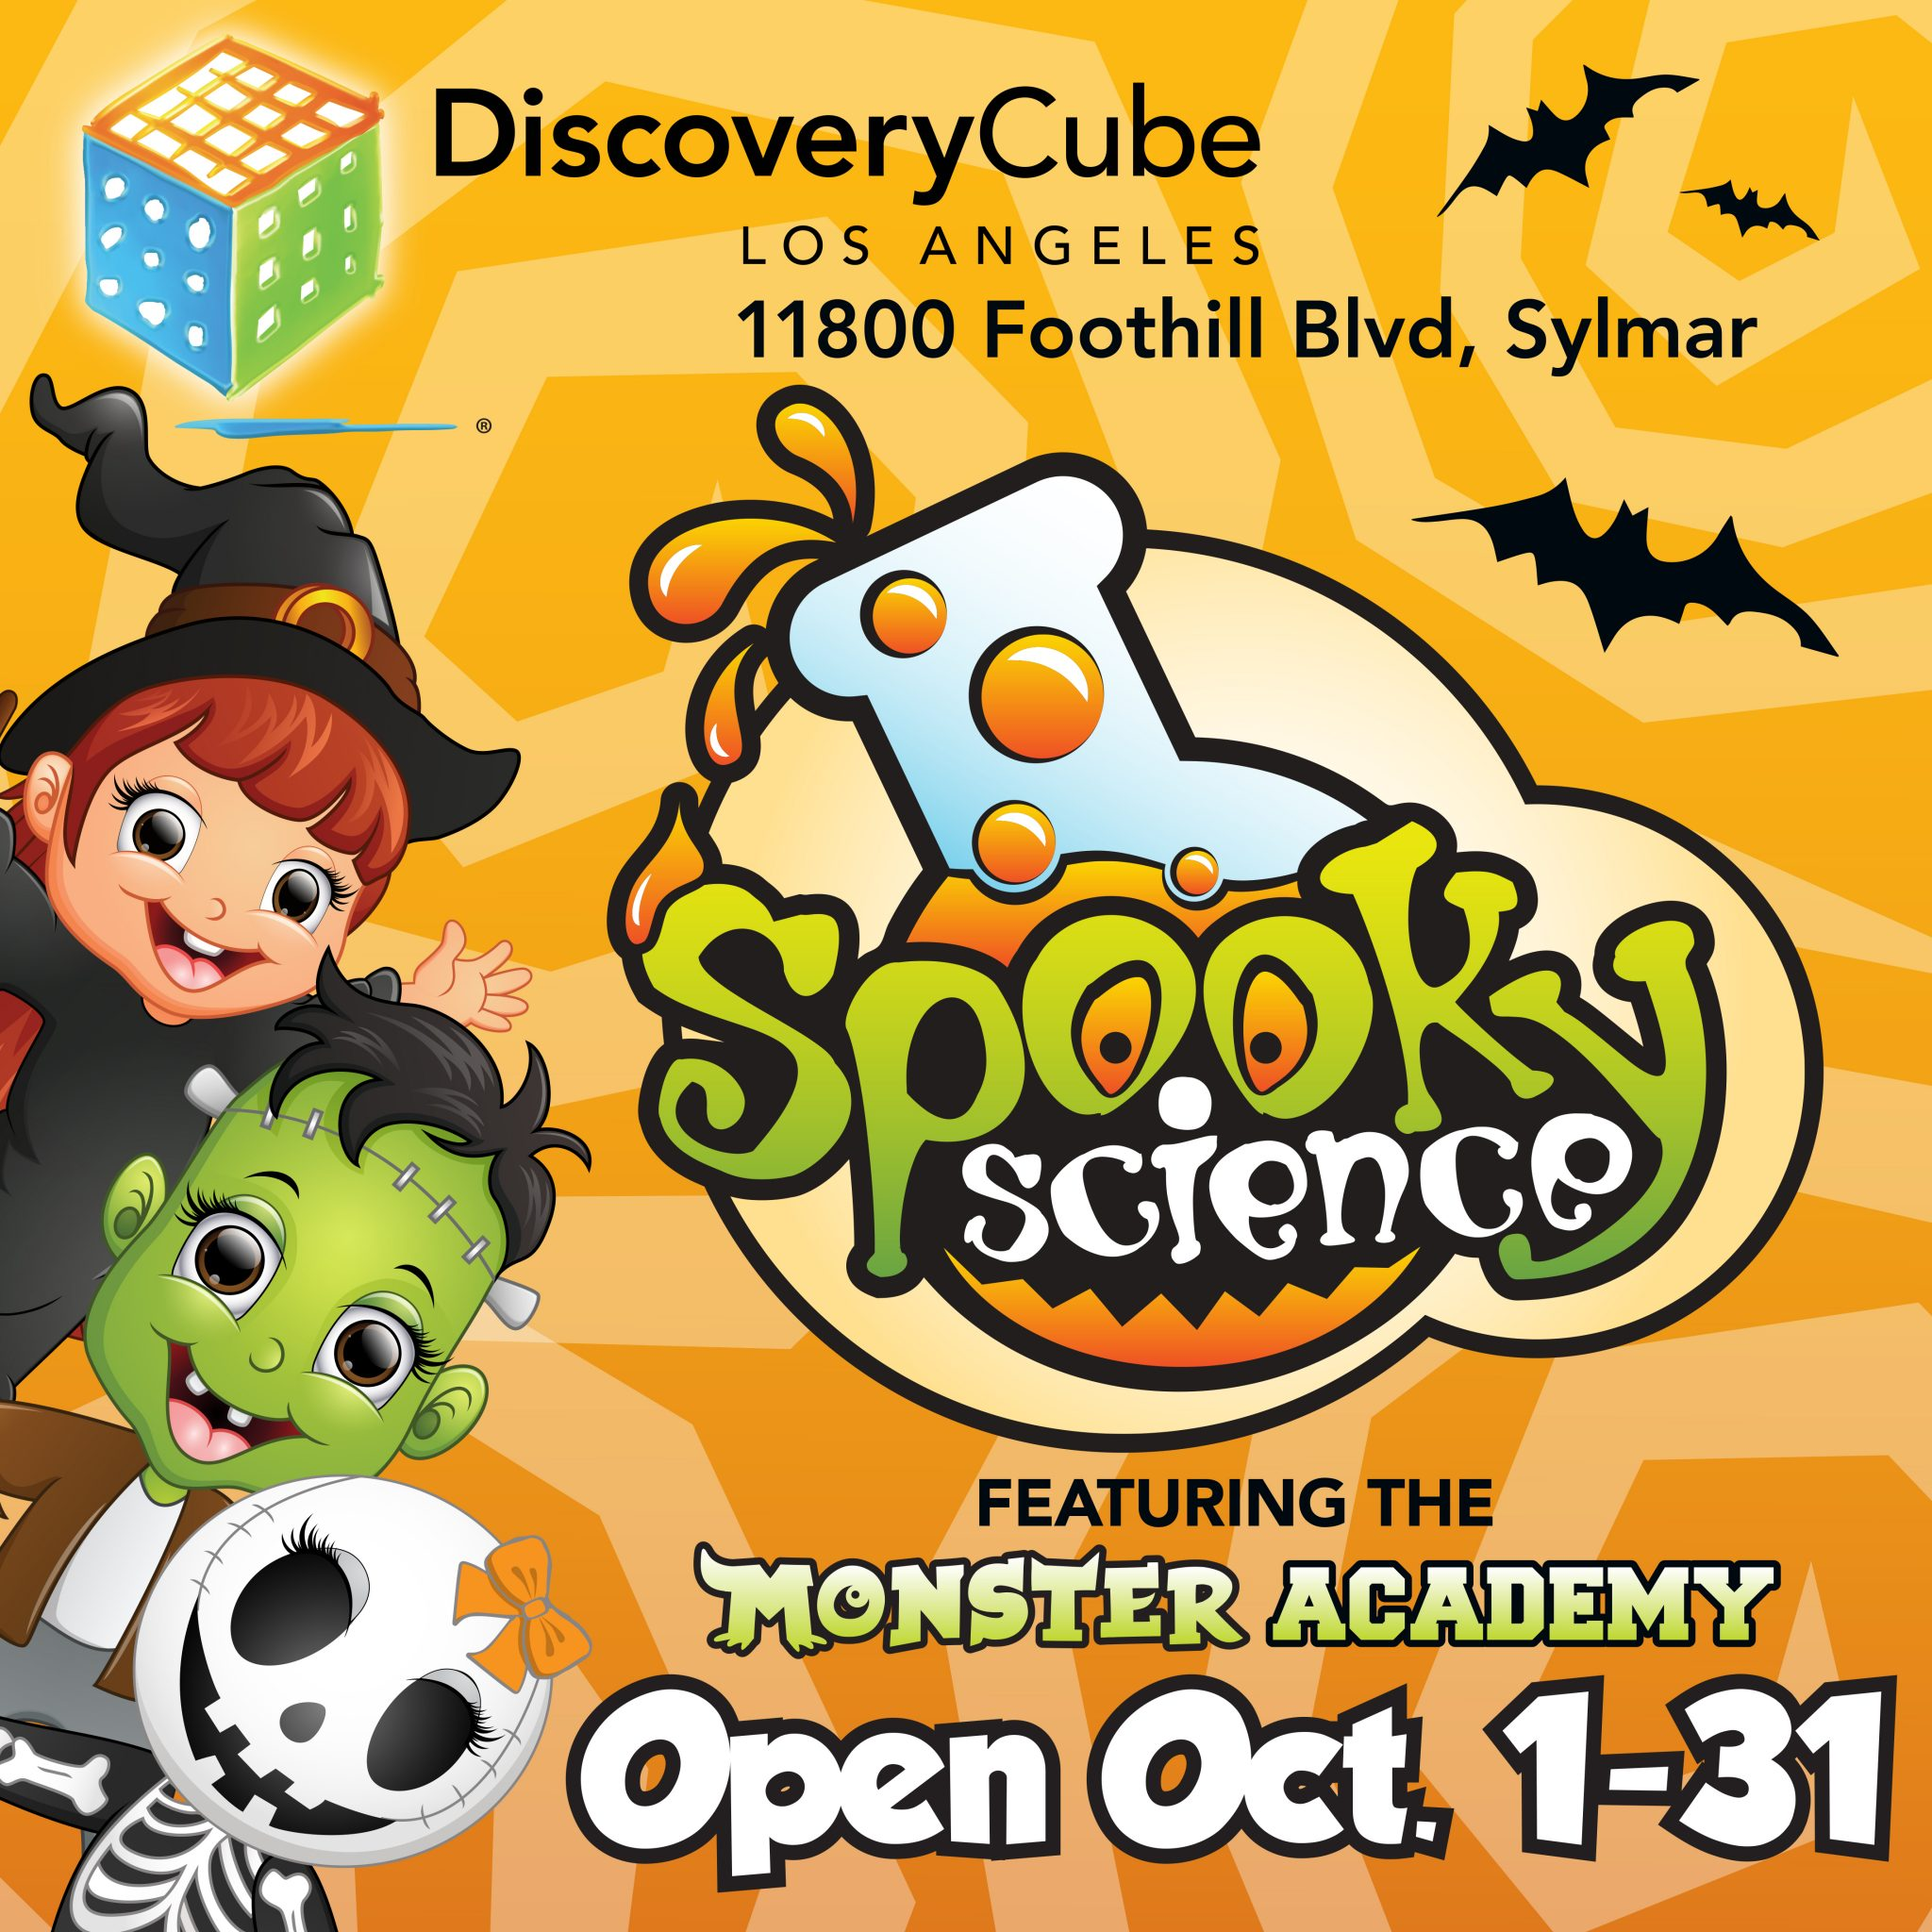 Spooky Science Featuring the Monster Academy